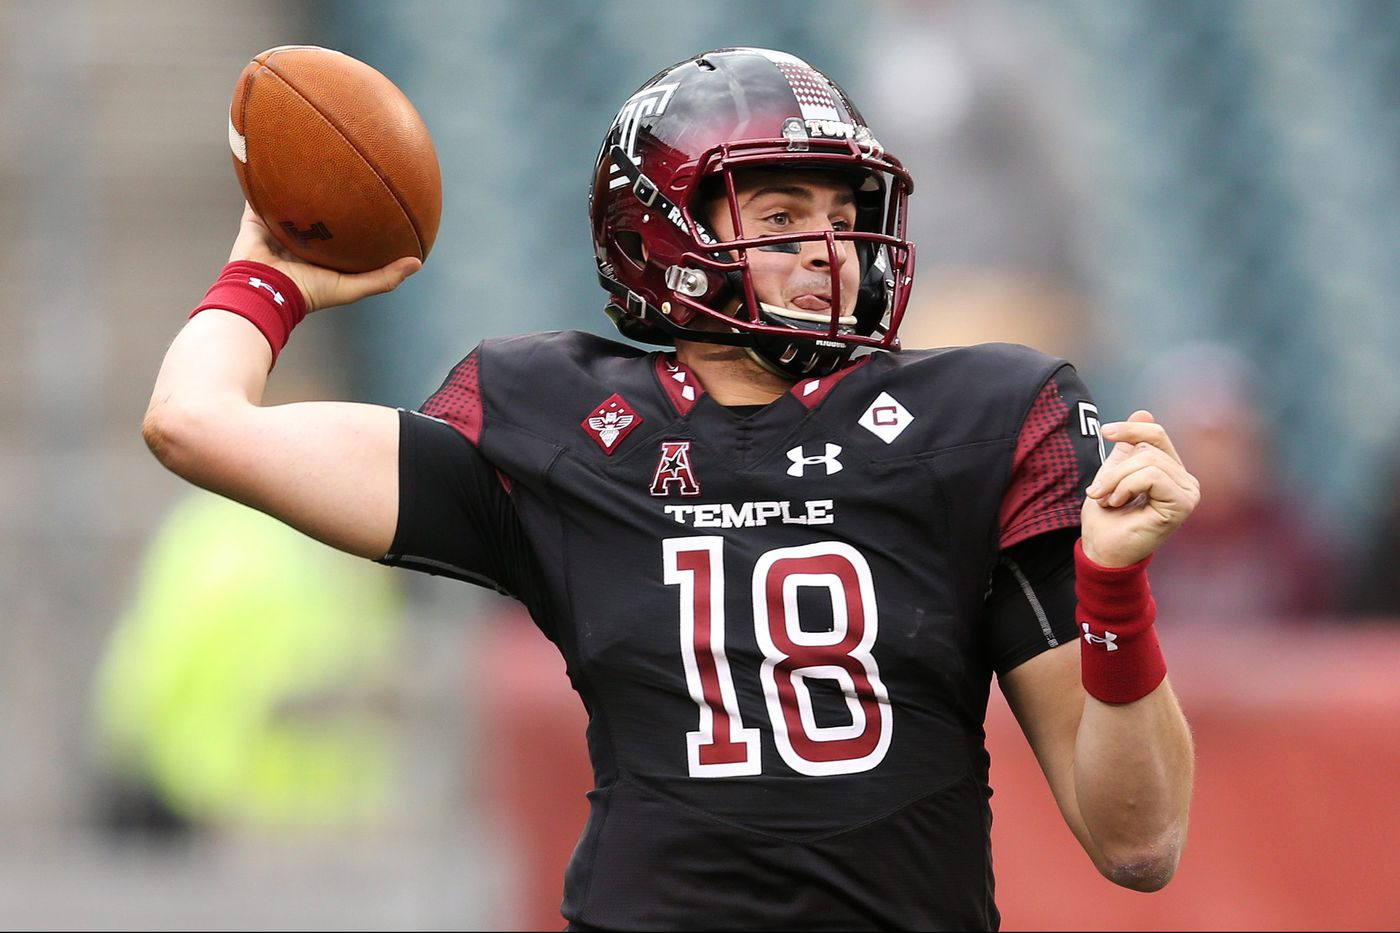 Frank Nutile is the unquestioned team leader | Temple quarterback preview